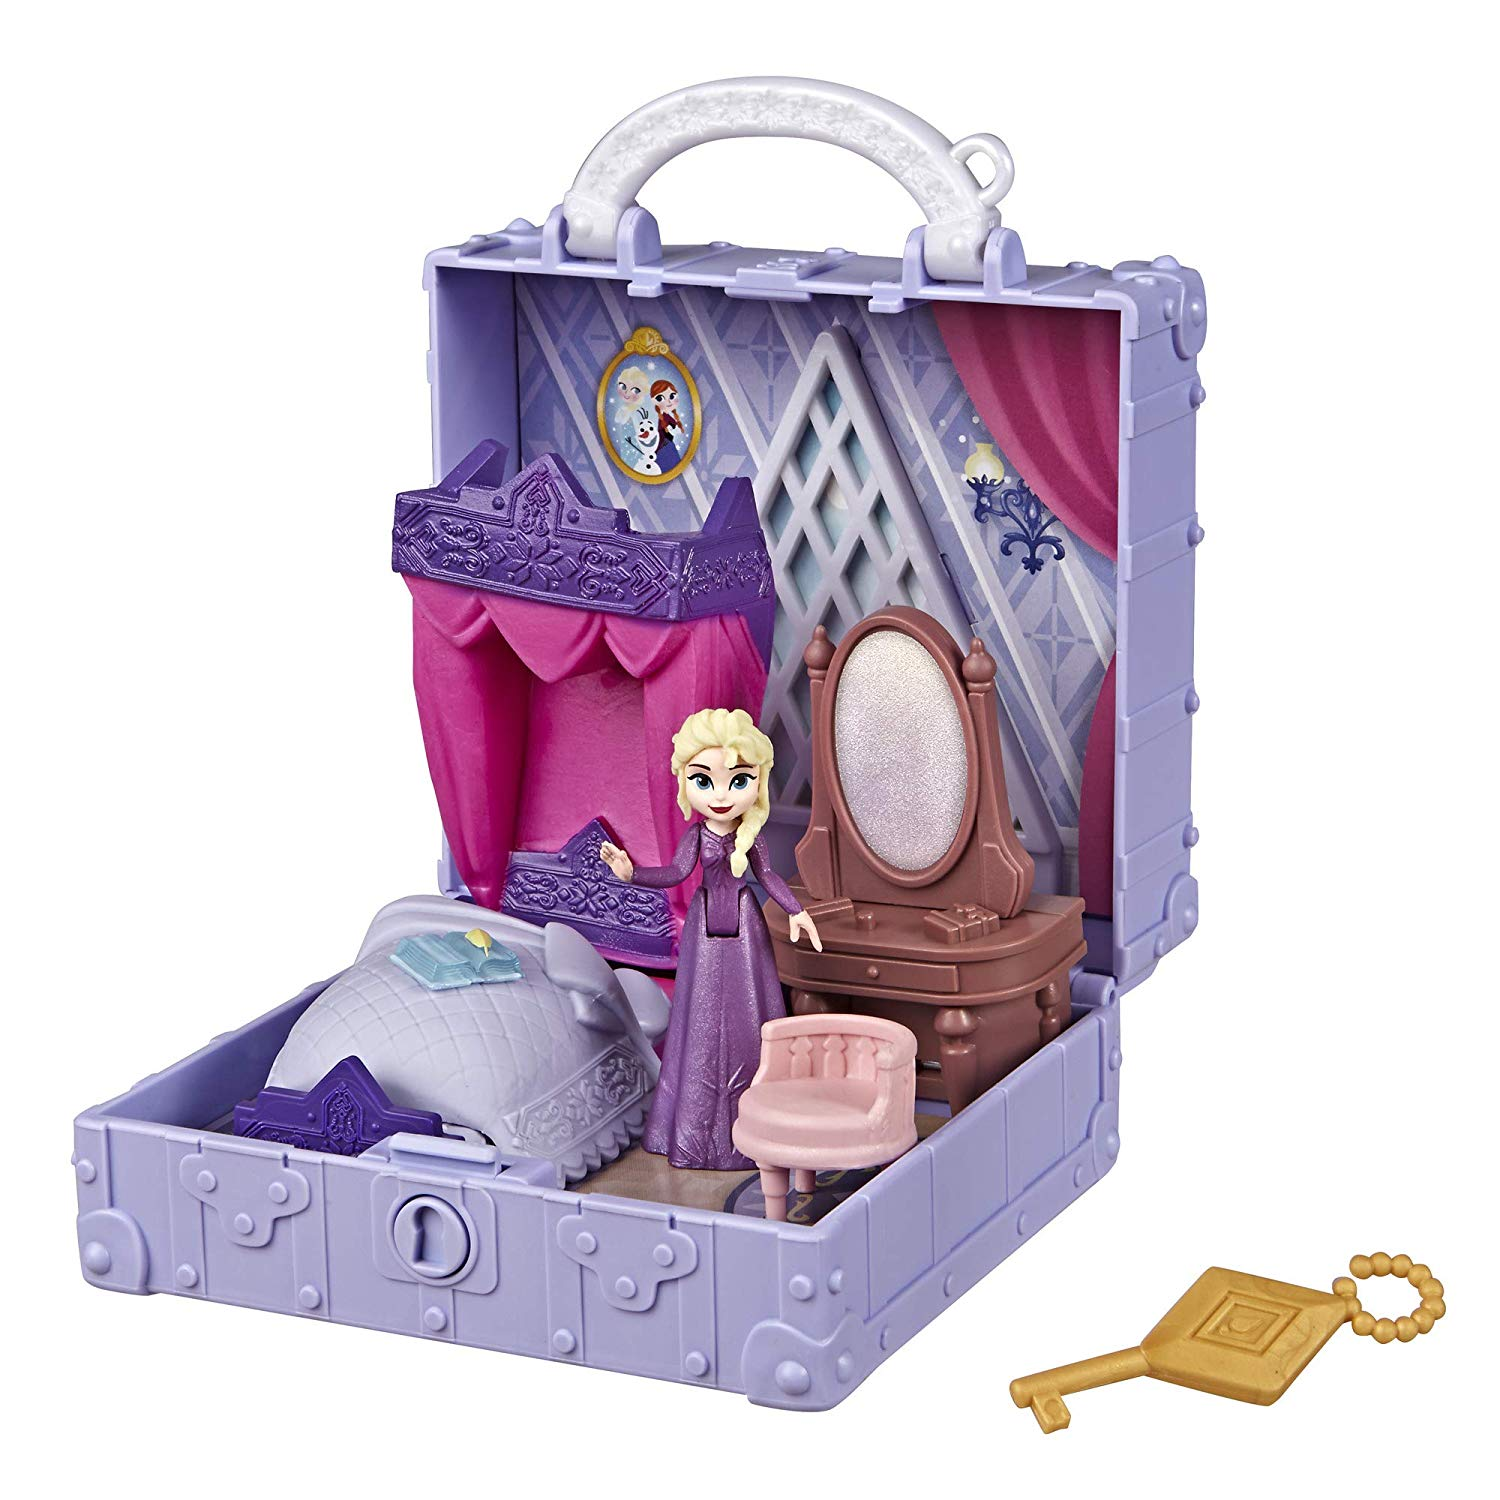 Disney Frozen 2 Pop-Up Adventures Playset